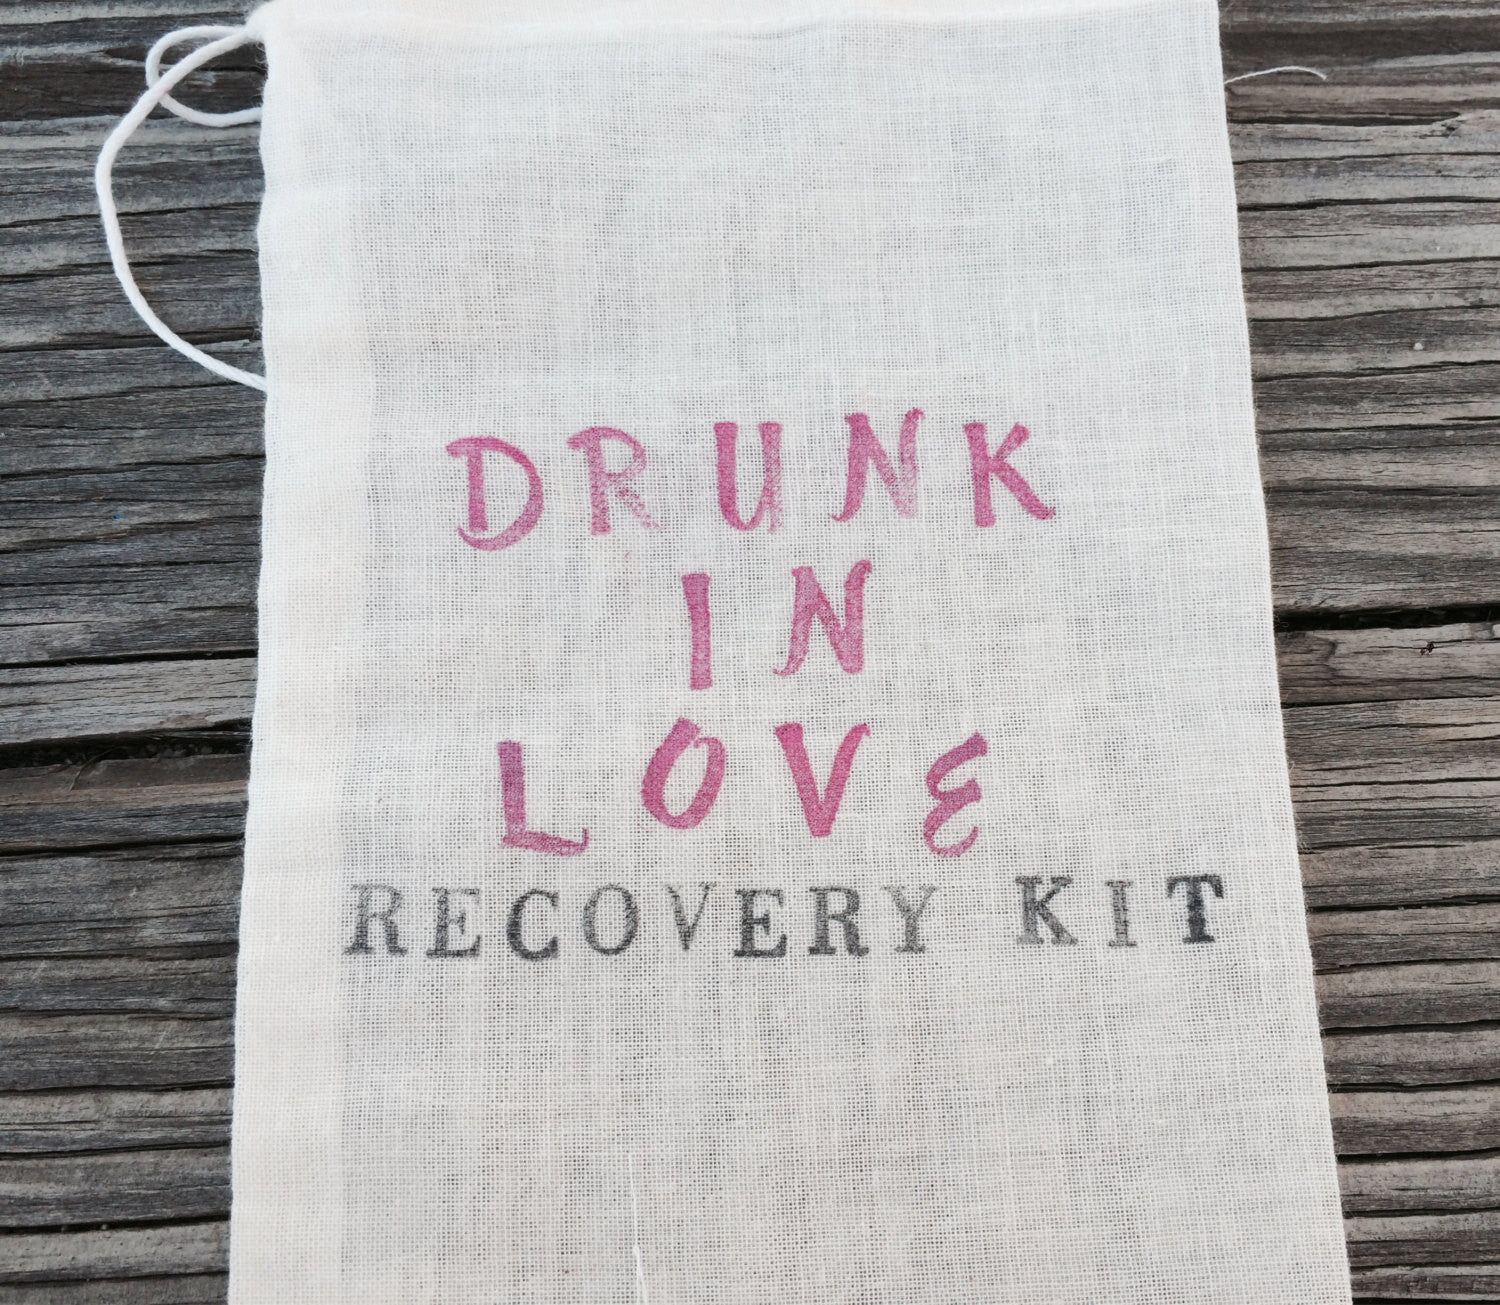 15 Hangover kits, 6x8 recovery kit, bachelorette survival kit, bachelorette party favor, girls night out